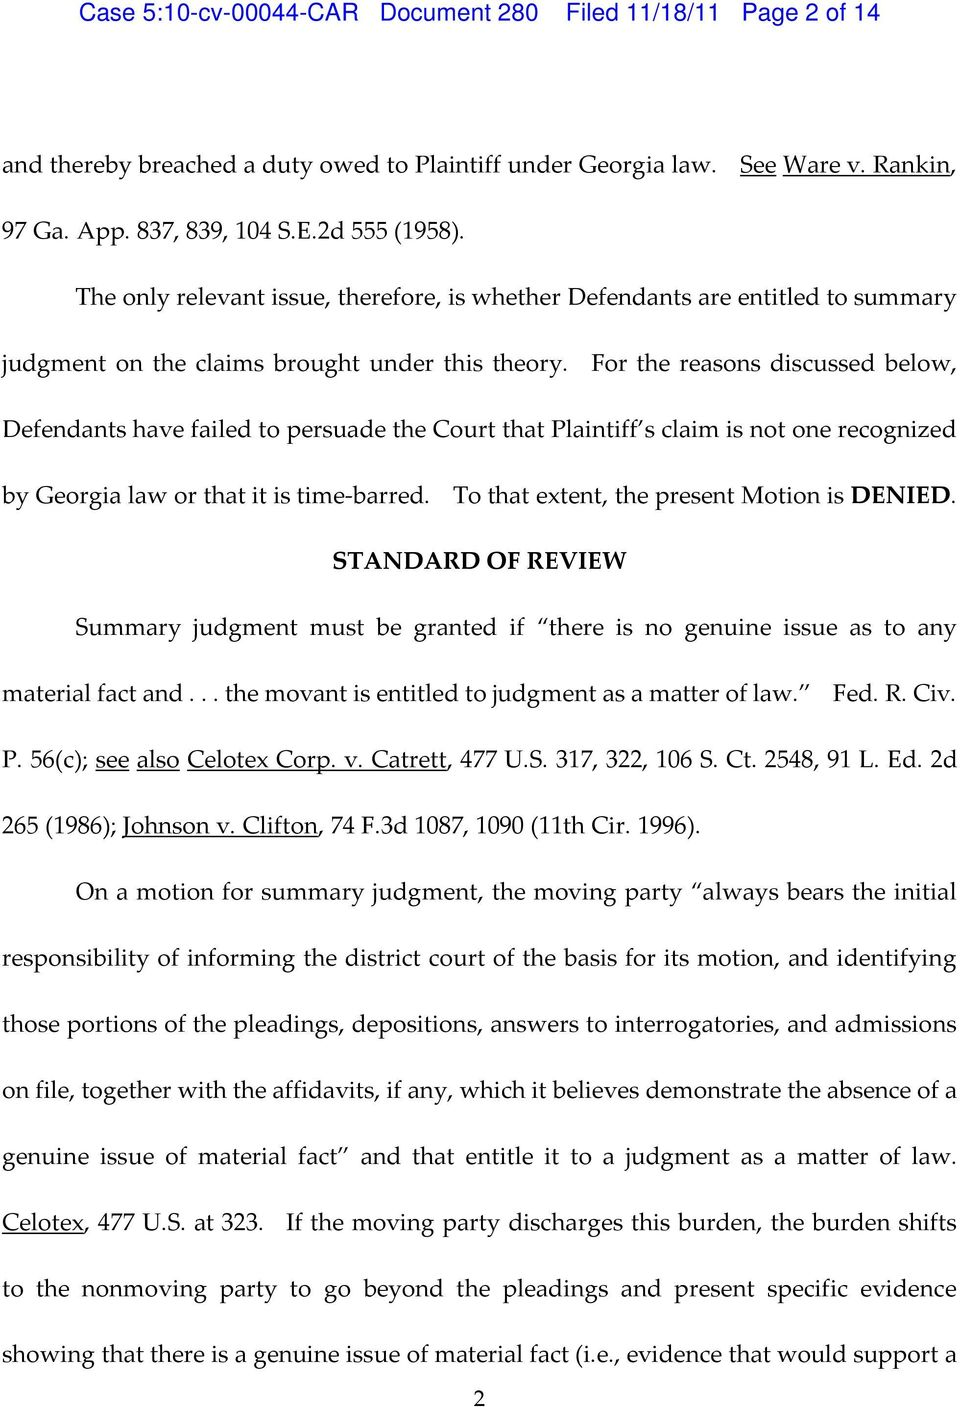 For the reasons discussed below, Defendants have failed to persuade the Court that Plaintiff s claim is not one recognized by Georgia law or that it is time barred.